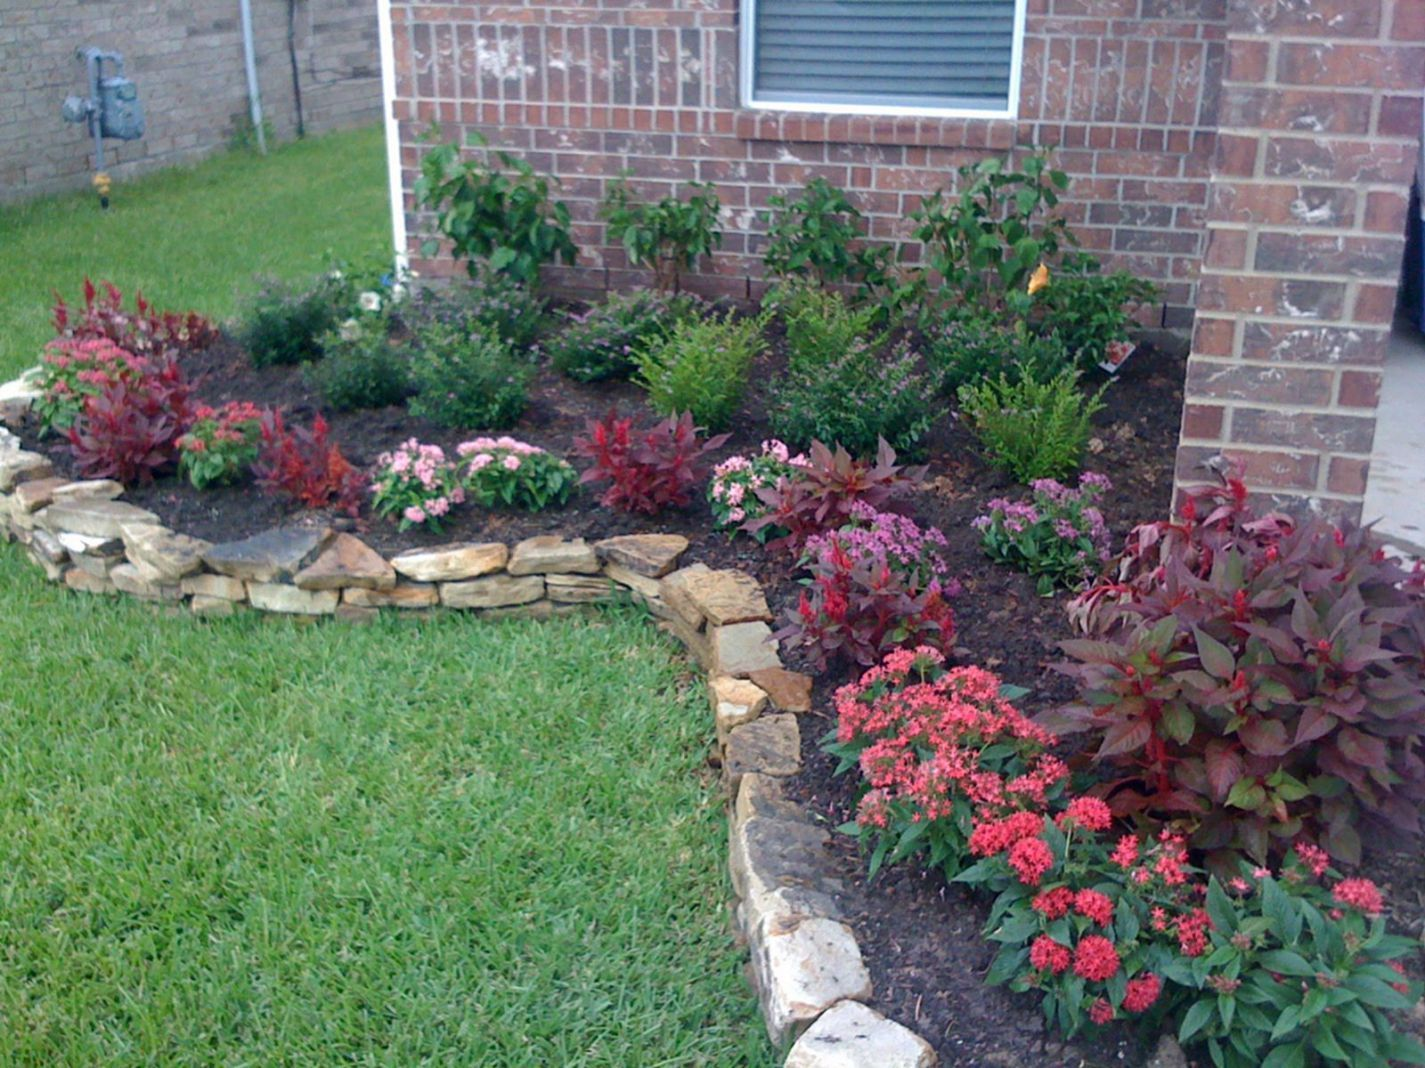 Incredible Flower Beds Ideas To Make Your Home Front Yard